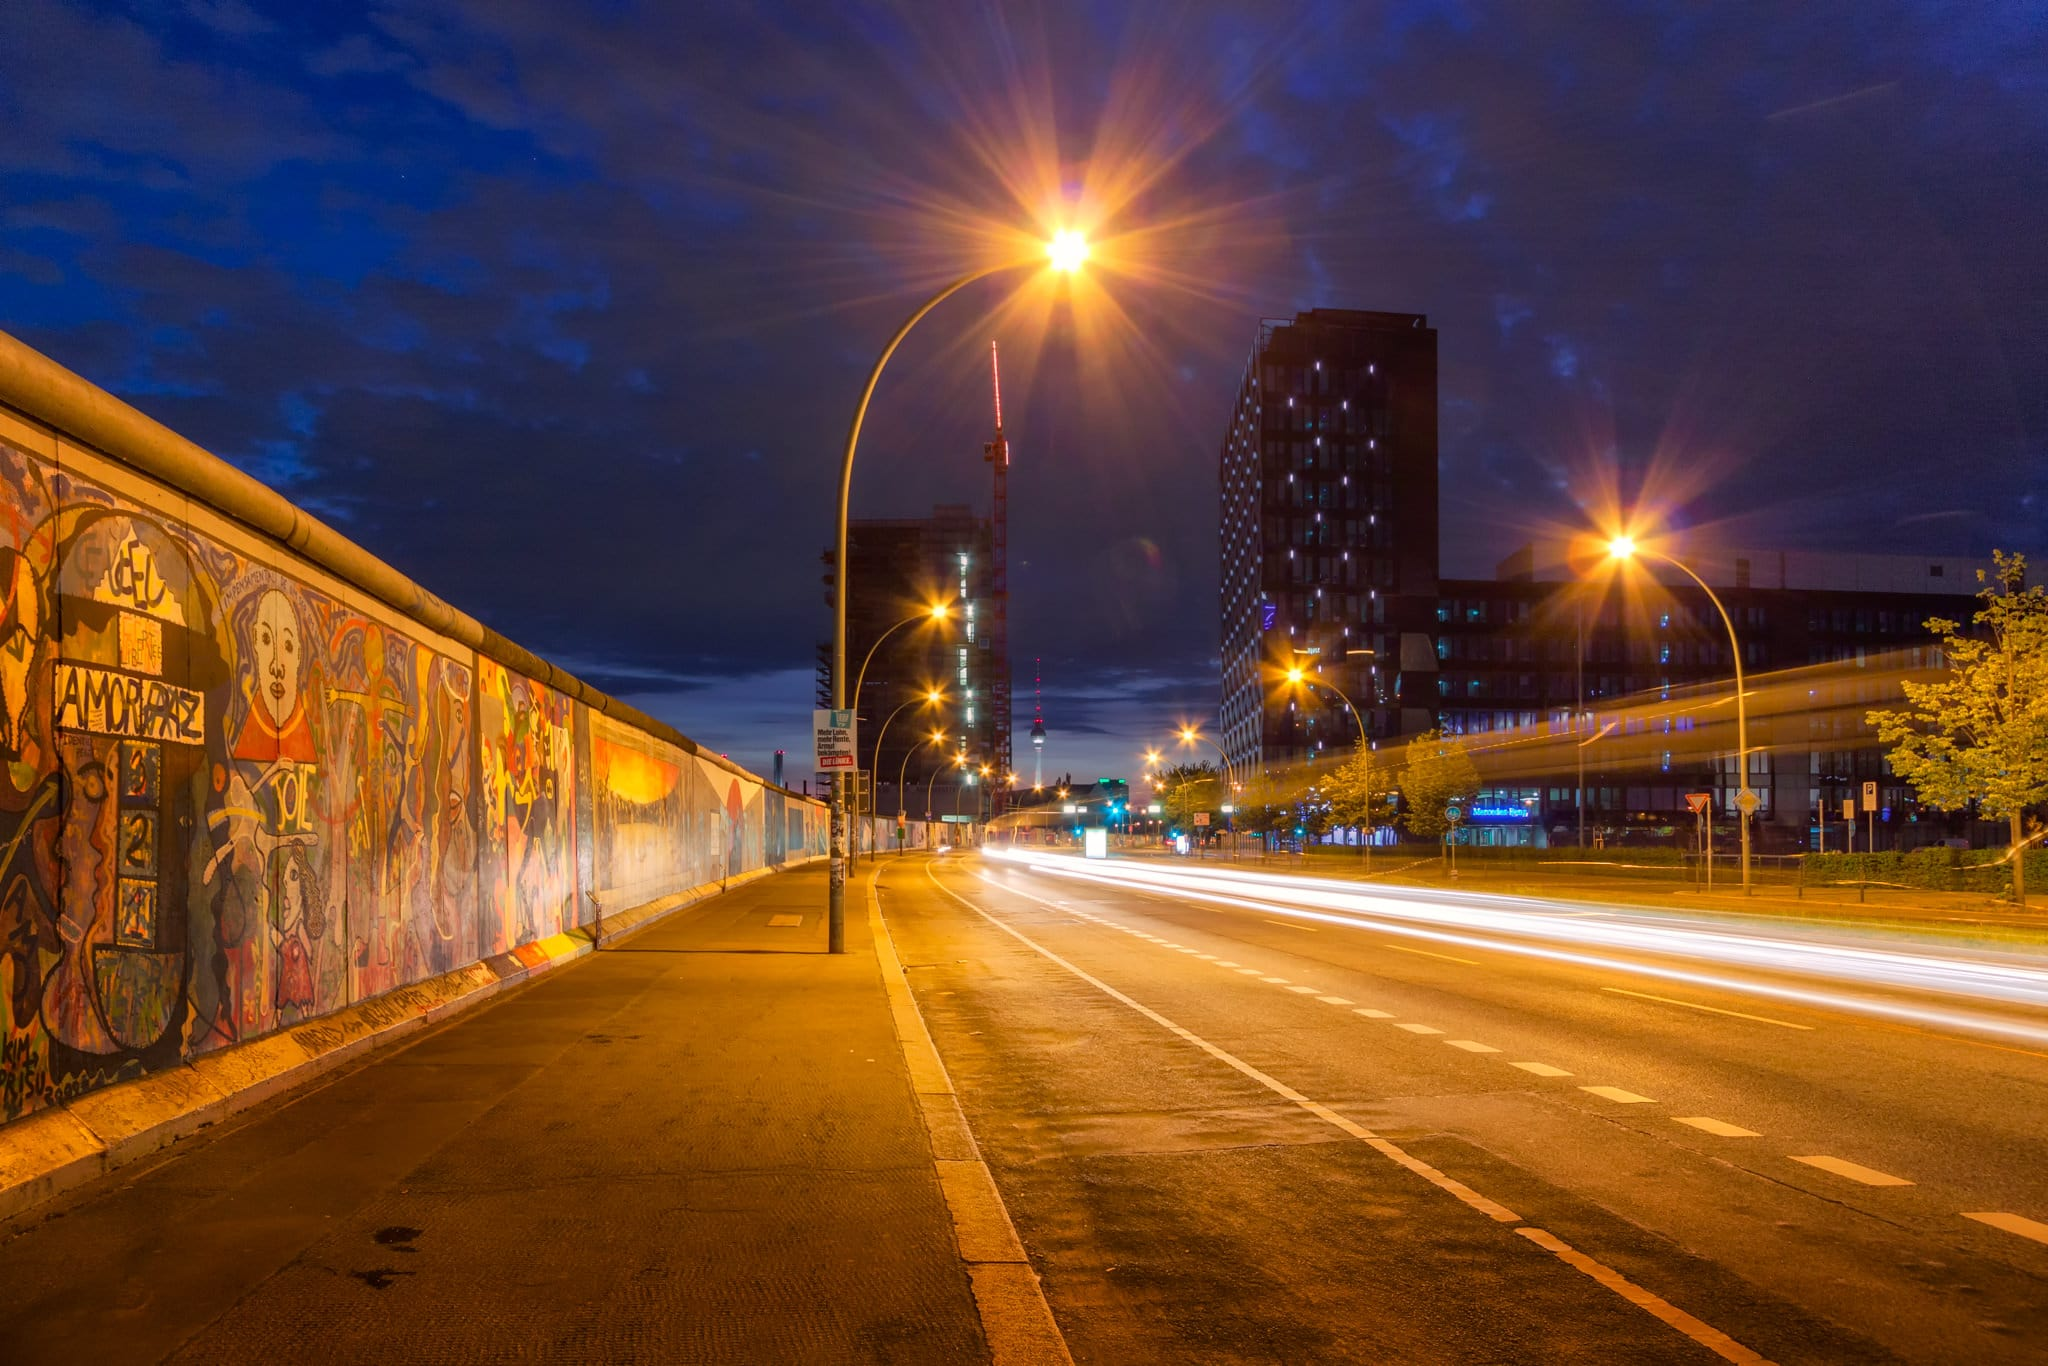 Berliner Mauer – The Berlin Wall during the night.